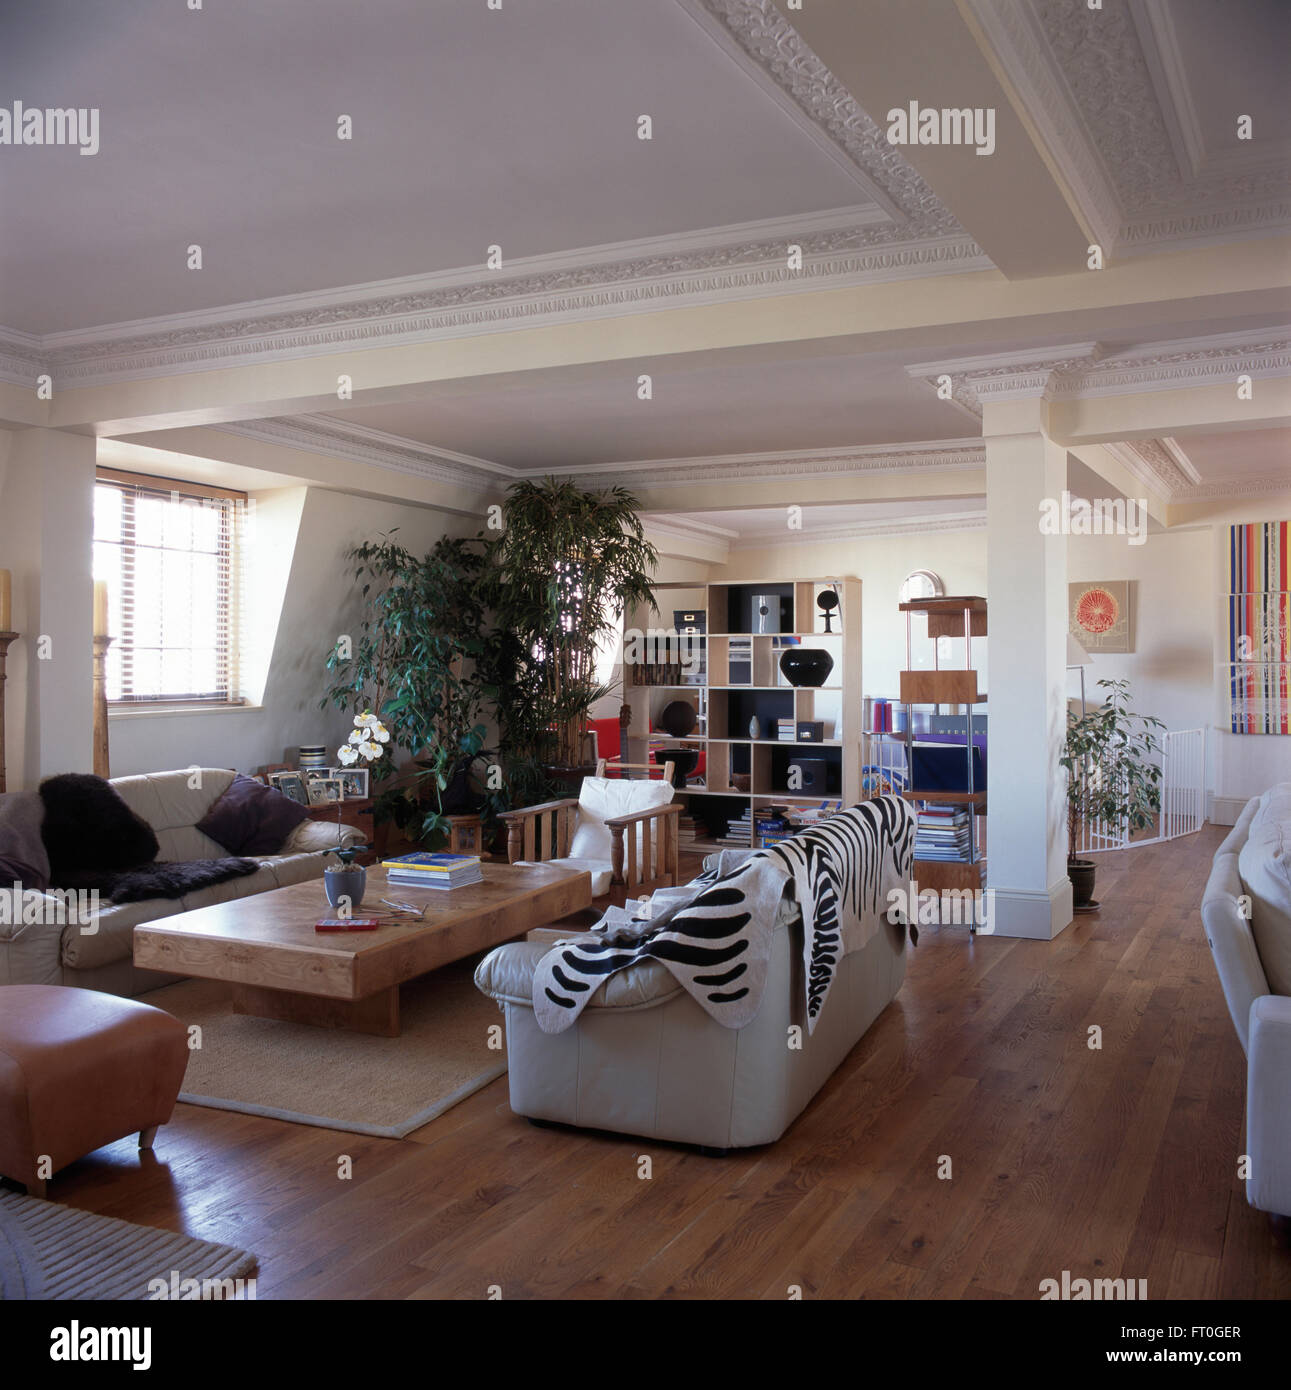 Faux zebra skin rug on white sofa in living area of a nineties loft conversion apartment with wooden flooring - Stock Image